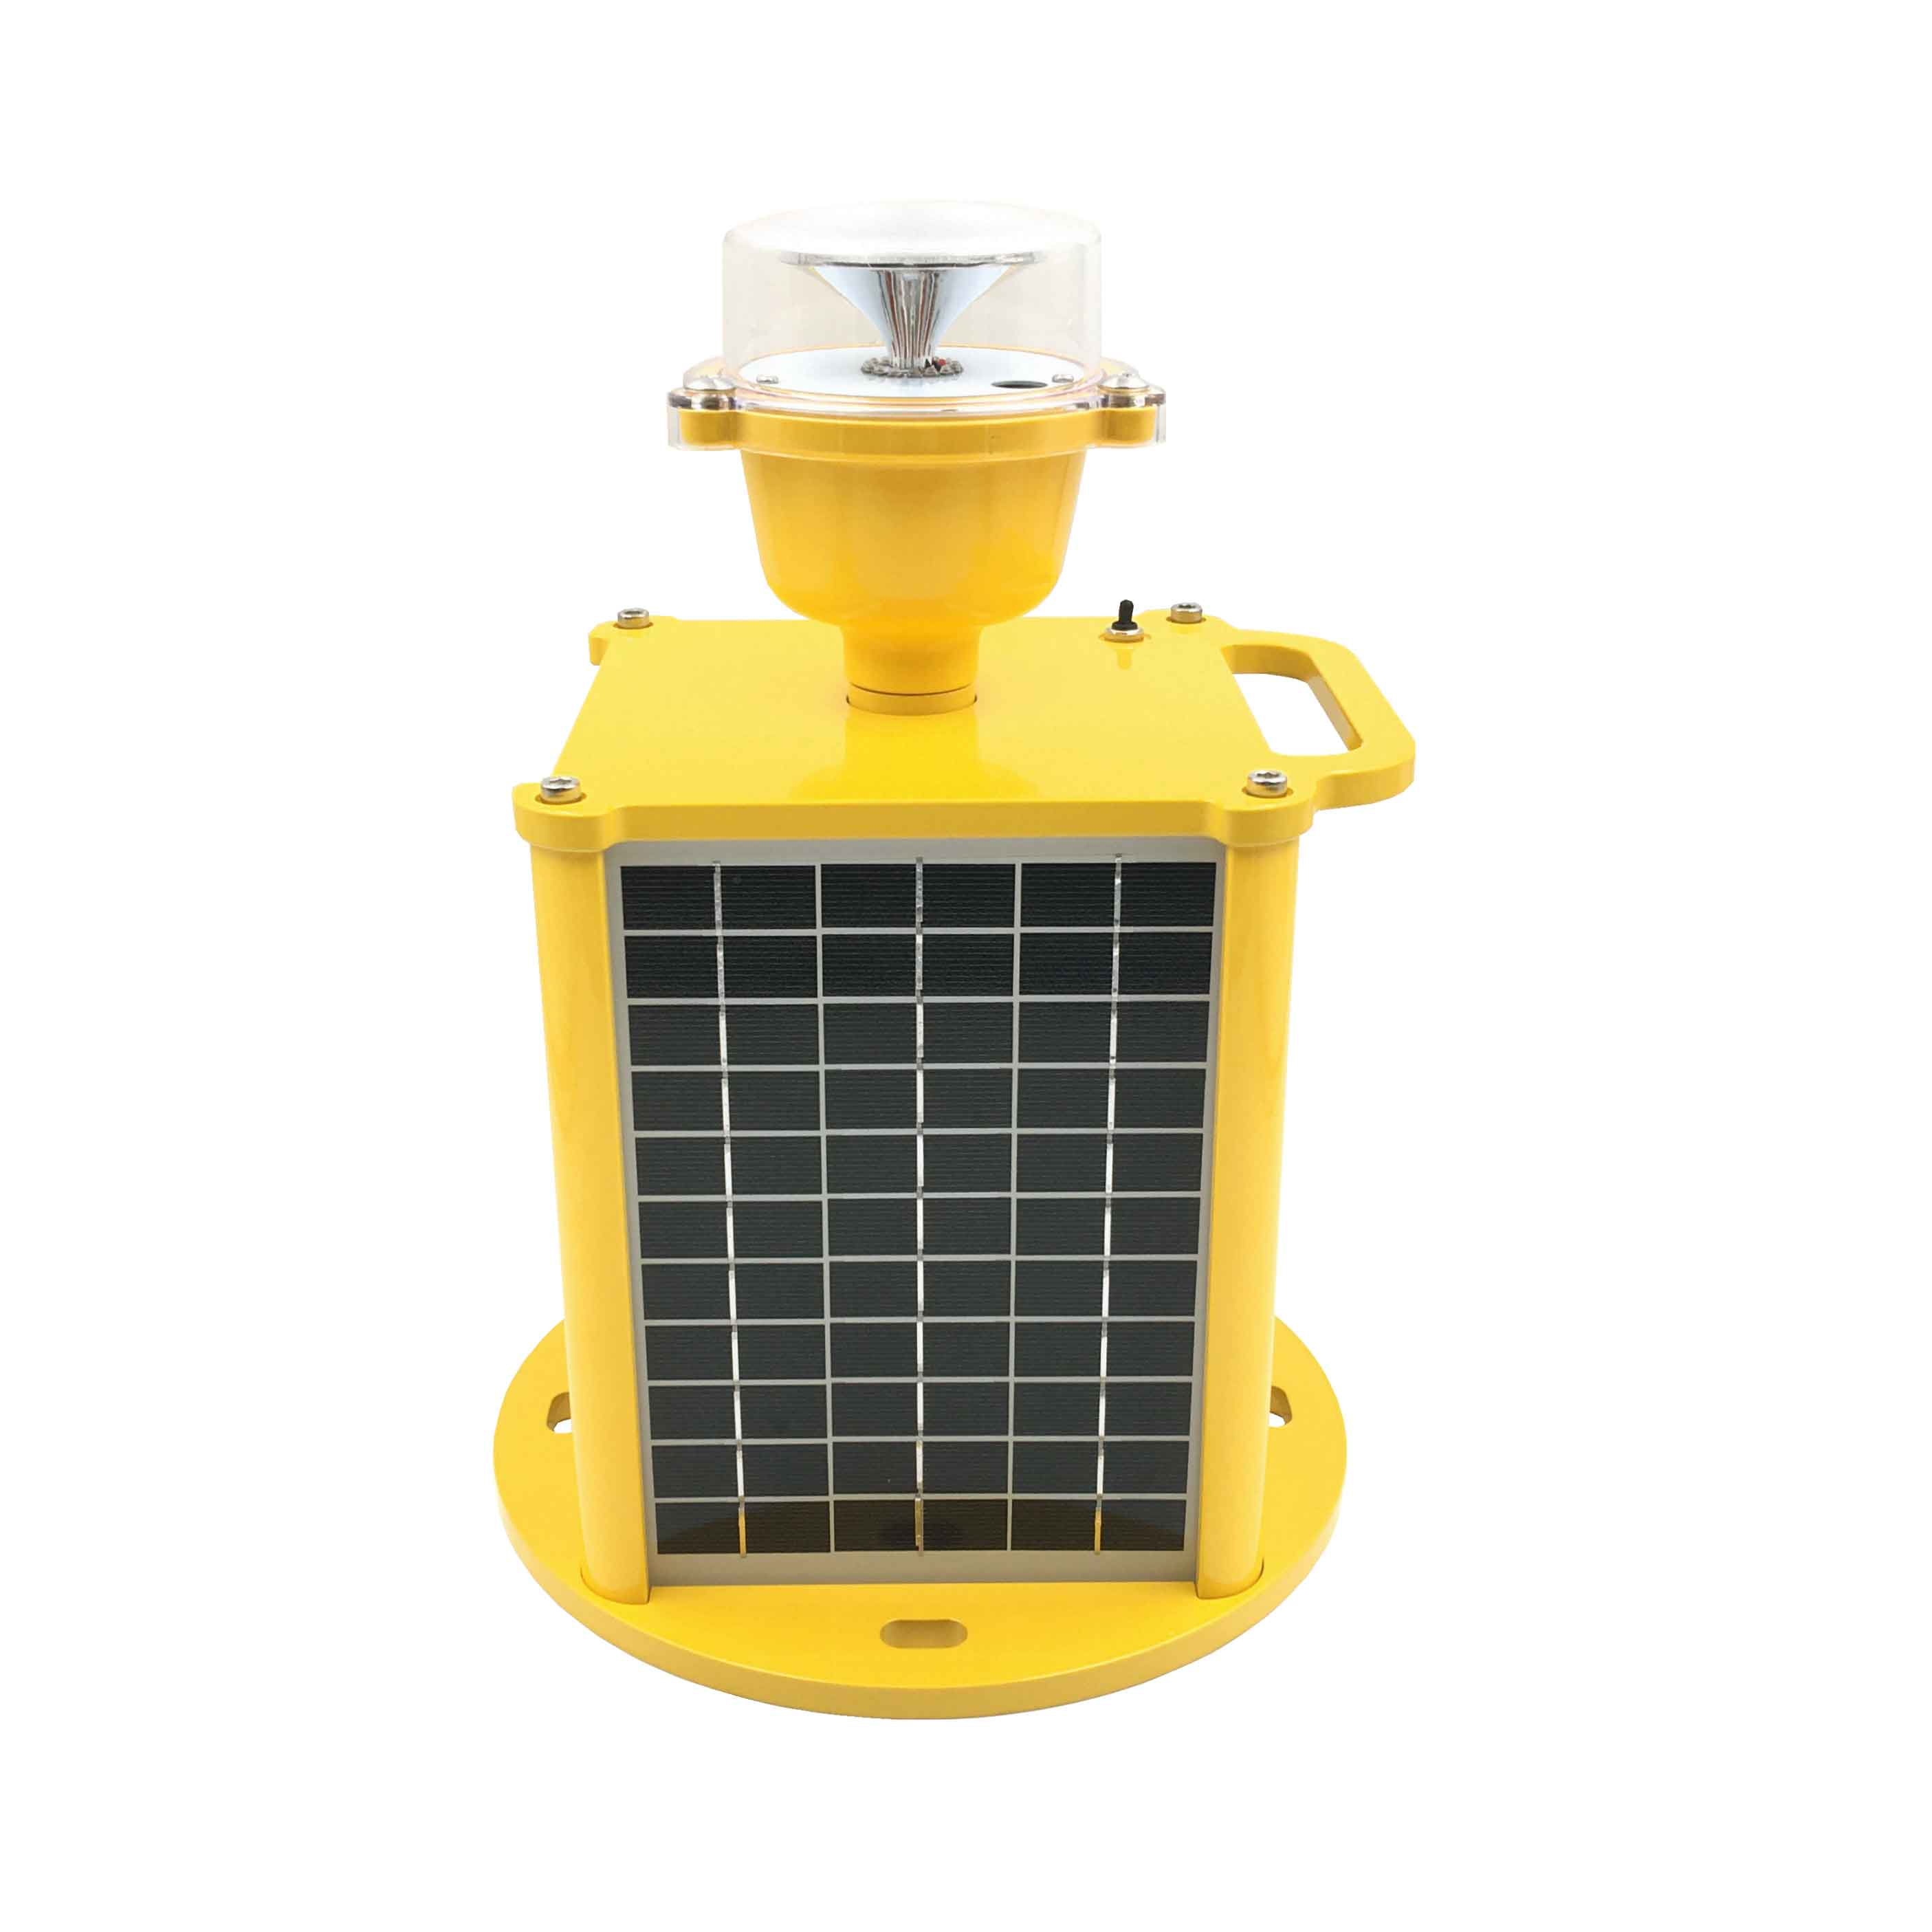 Newest IP68 ICAO standard solar powered Low intensity aircraft warning light for sale